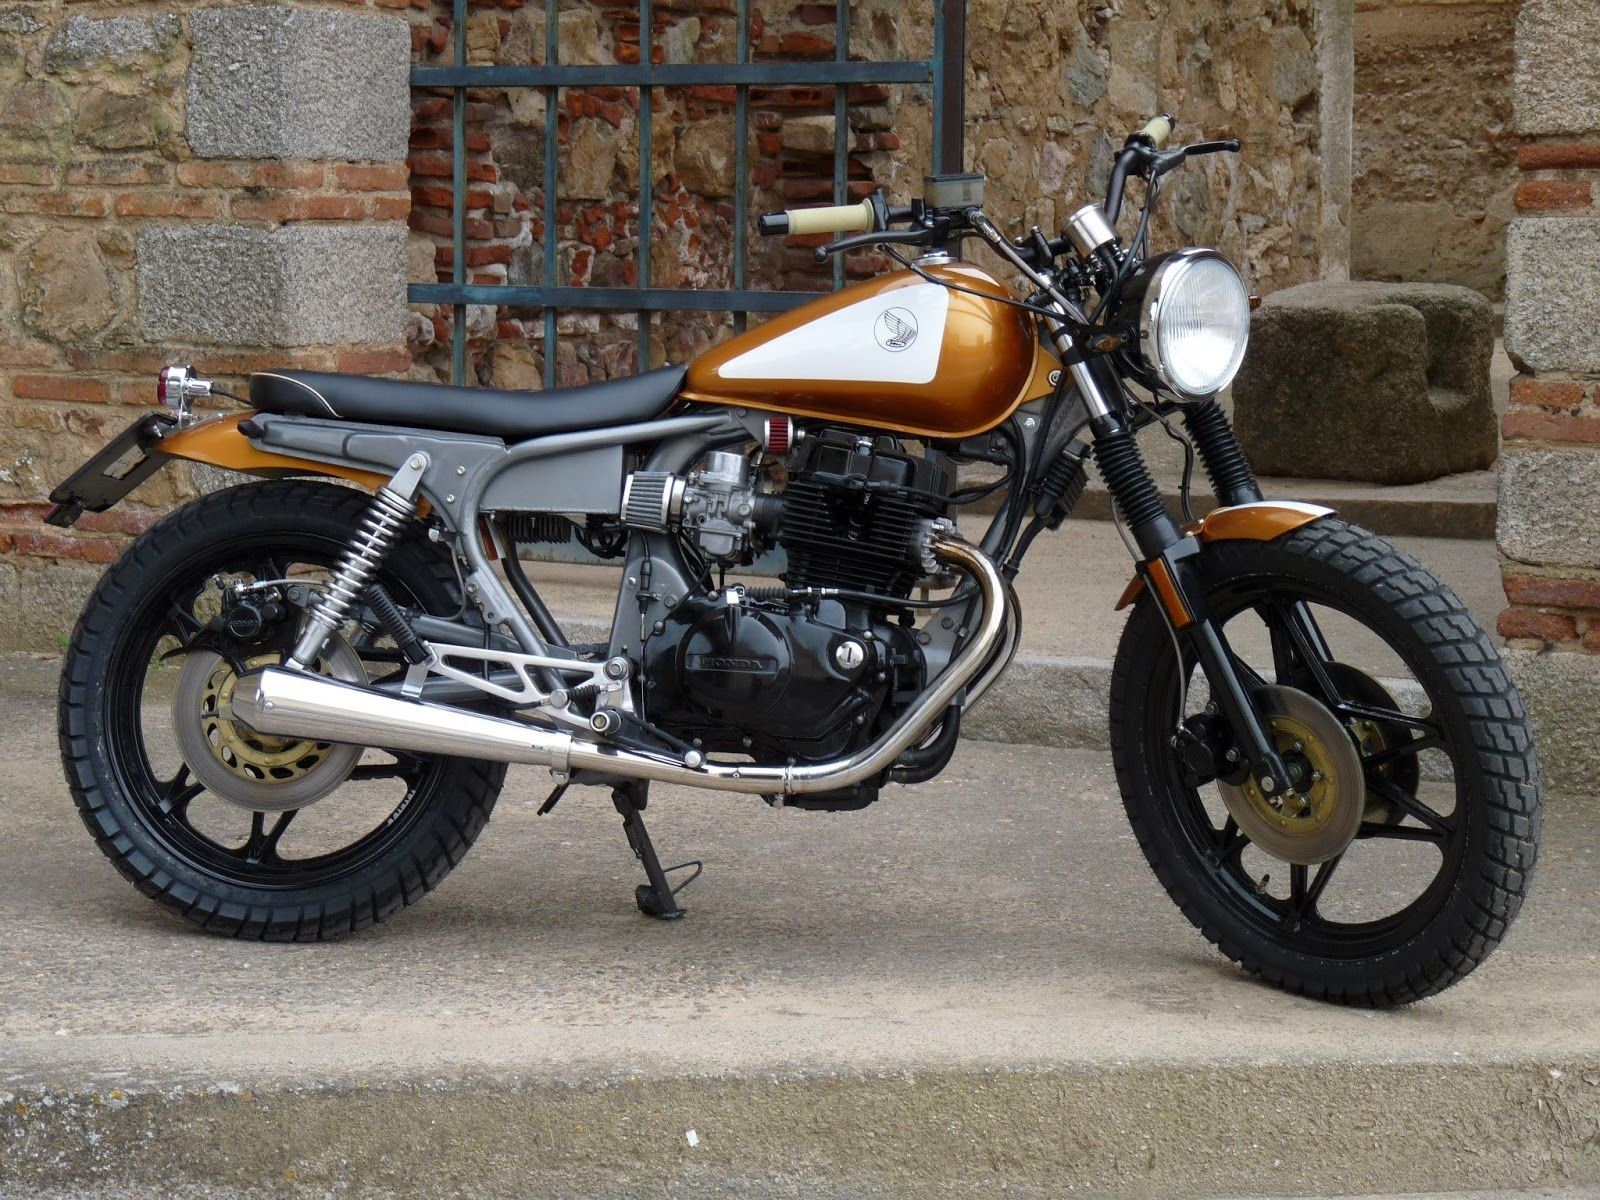 Cb450dx cafe racer google search motorcycle pinterest cafes cb450dx cafe racer google search motorcycle pinterest cafes cafe racing and honda thecheapjerseys Image collections